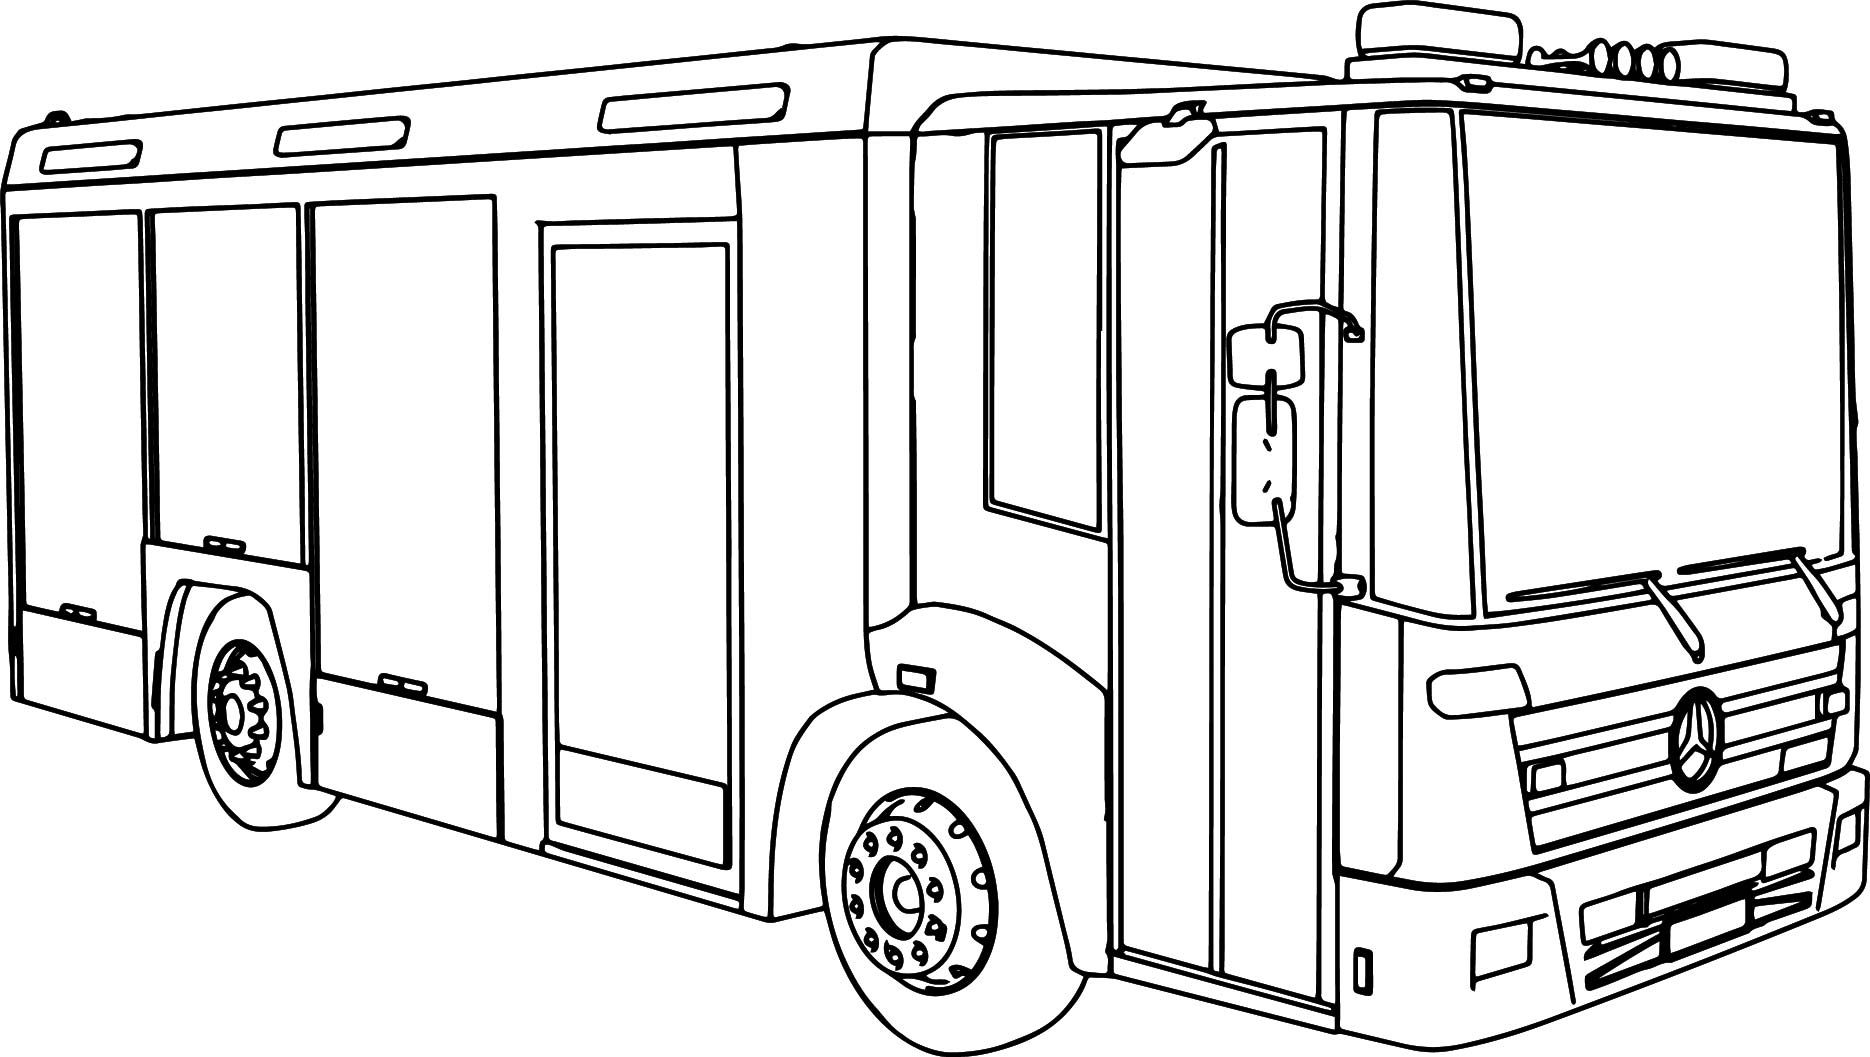 Awesome Mercedes Econic Fire Truck Coloring Page Truck Coloring Pages Coloring Pages Train Coloring Pages